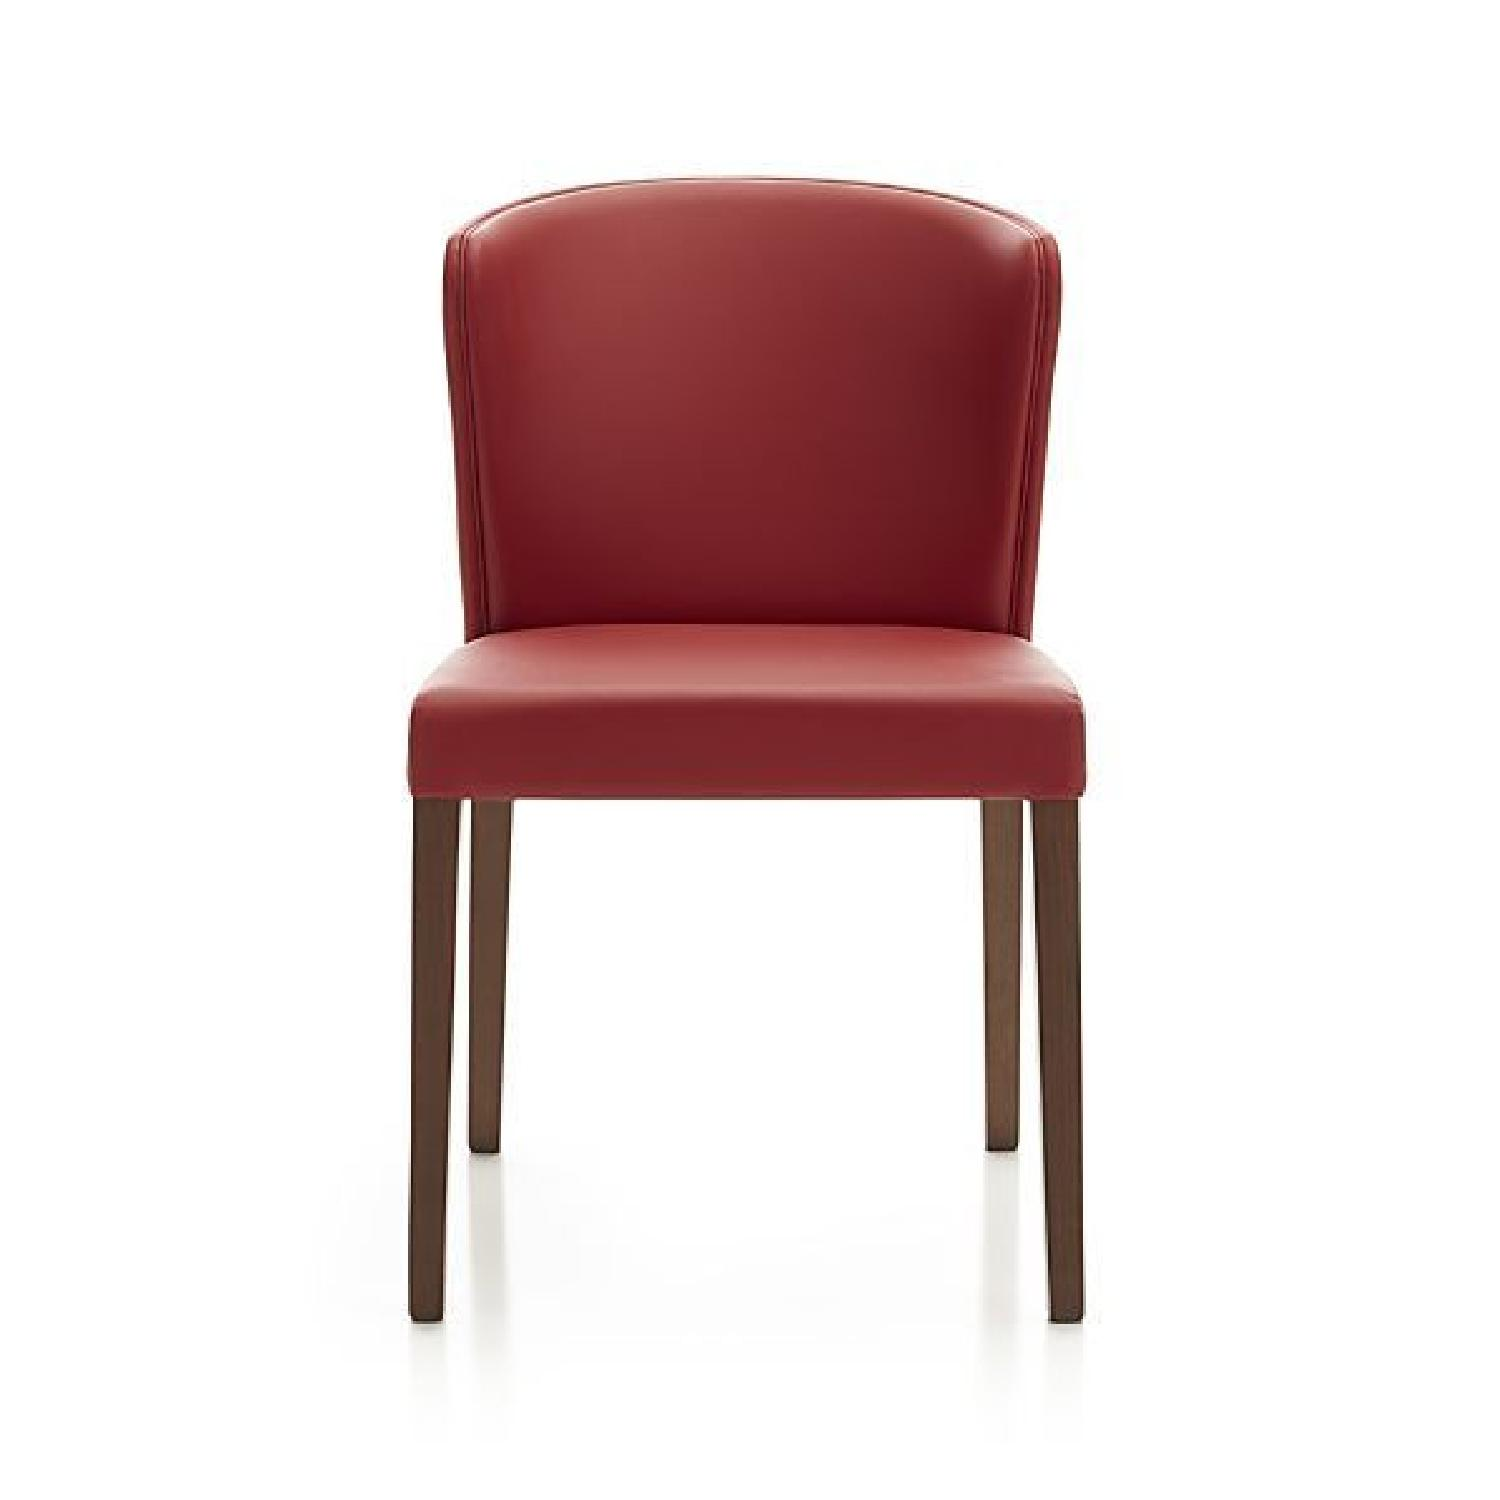 Crate & Barrel Curran Red Leather Dining Chair - image-0